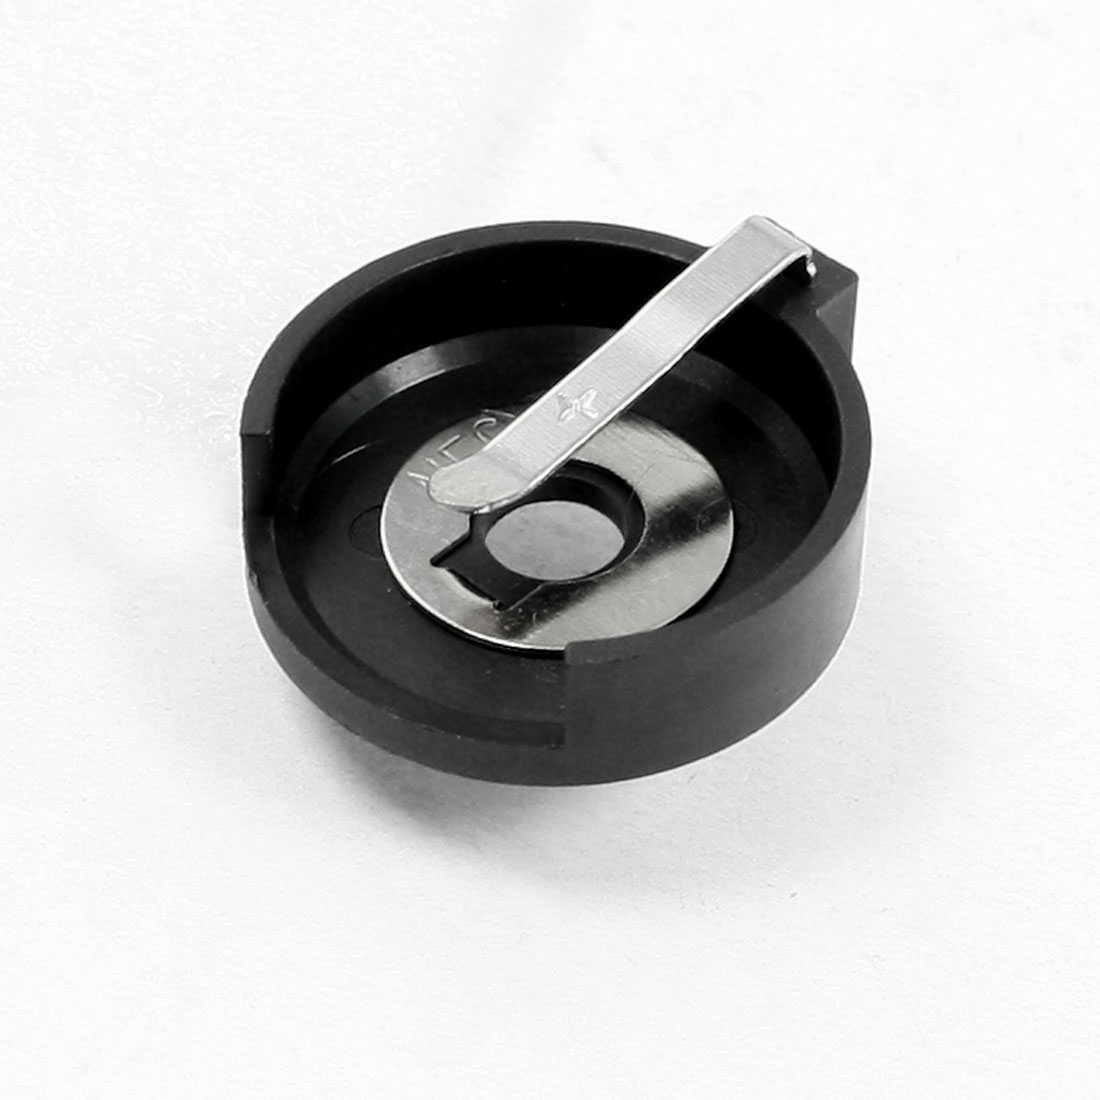 CR/LIR2477 Button Cell Battery Holder